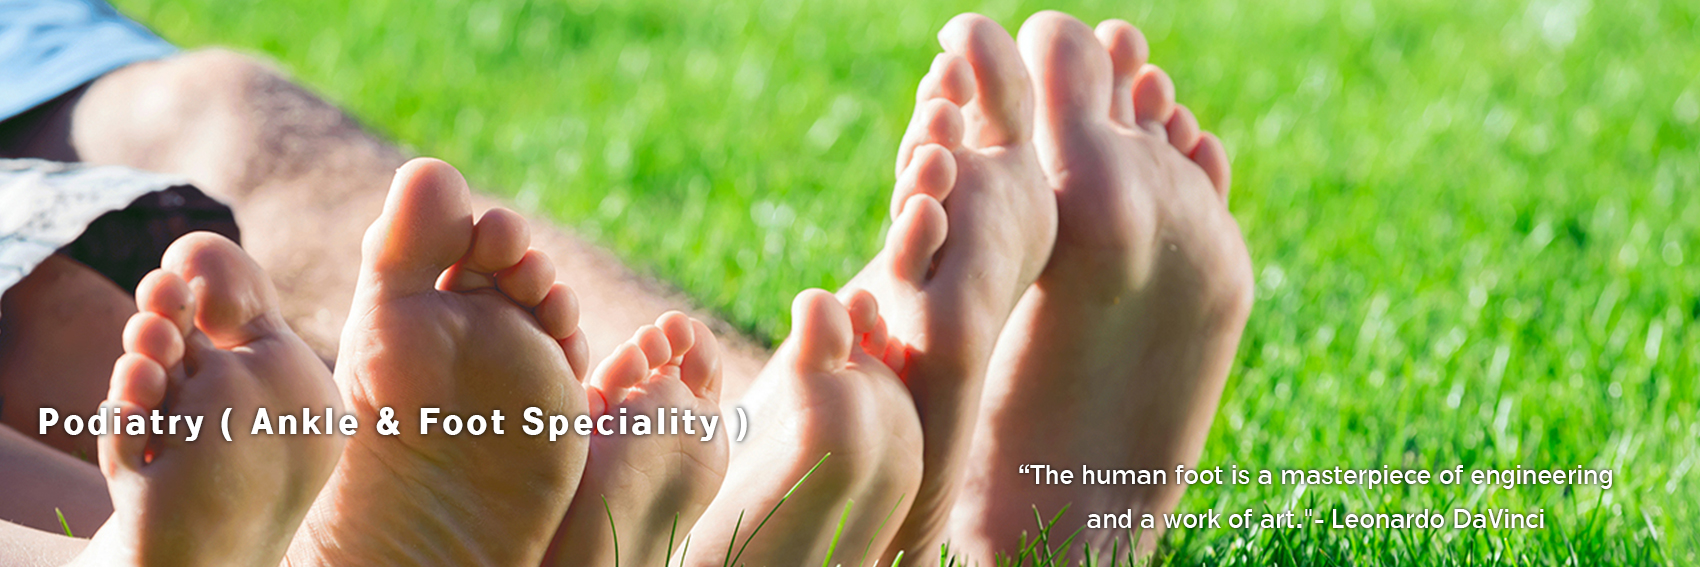 Ankle Foot Speciality